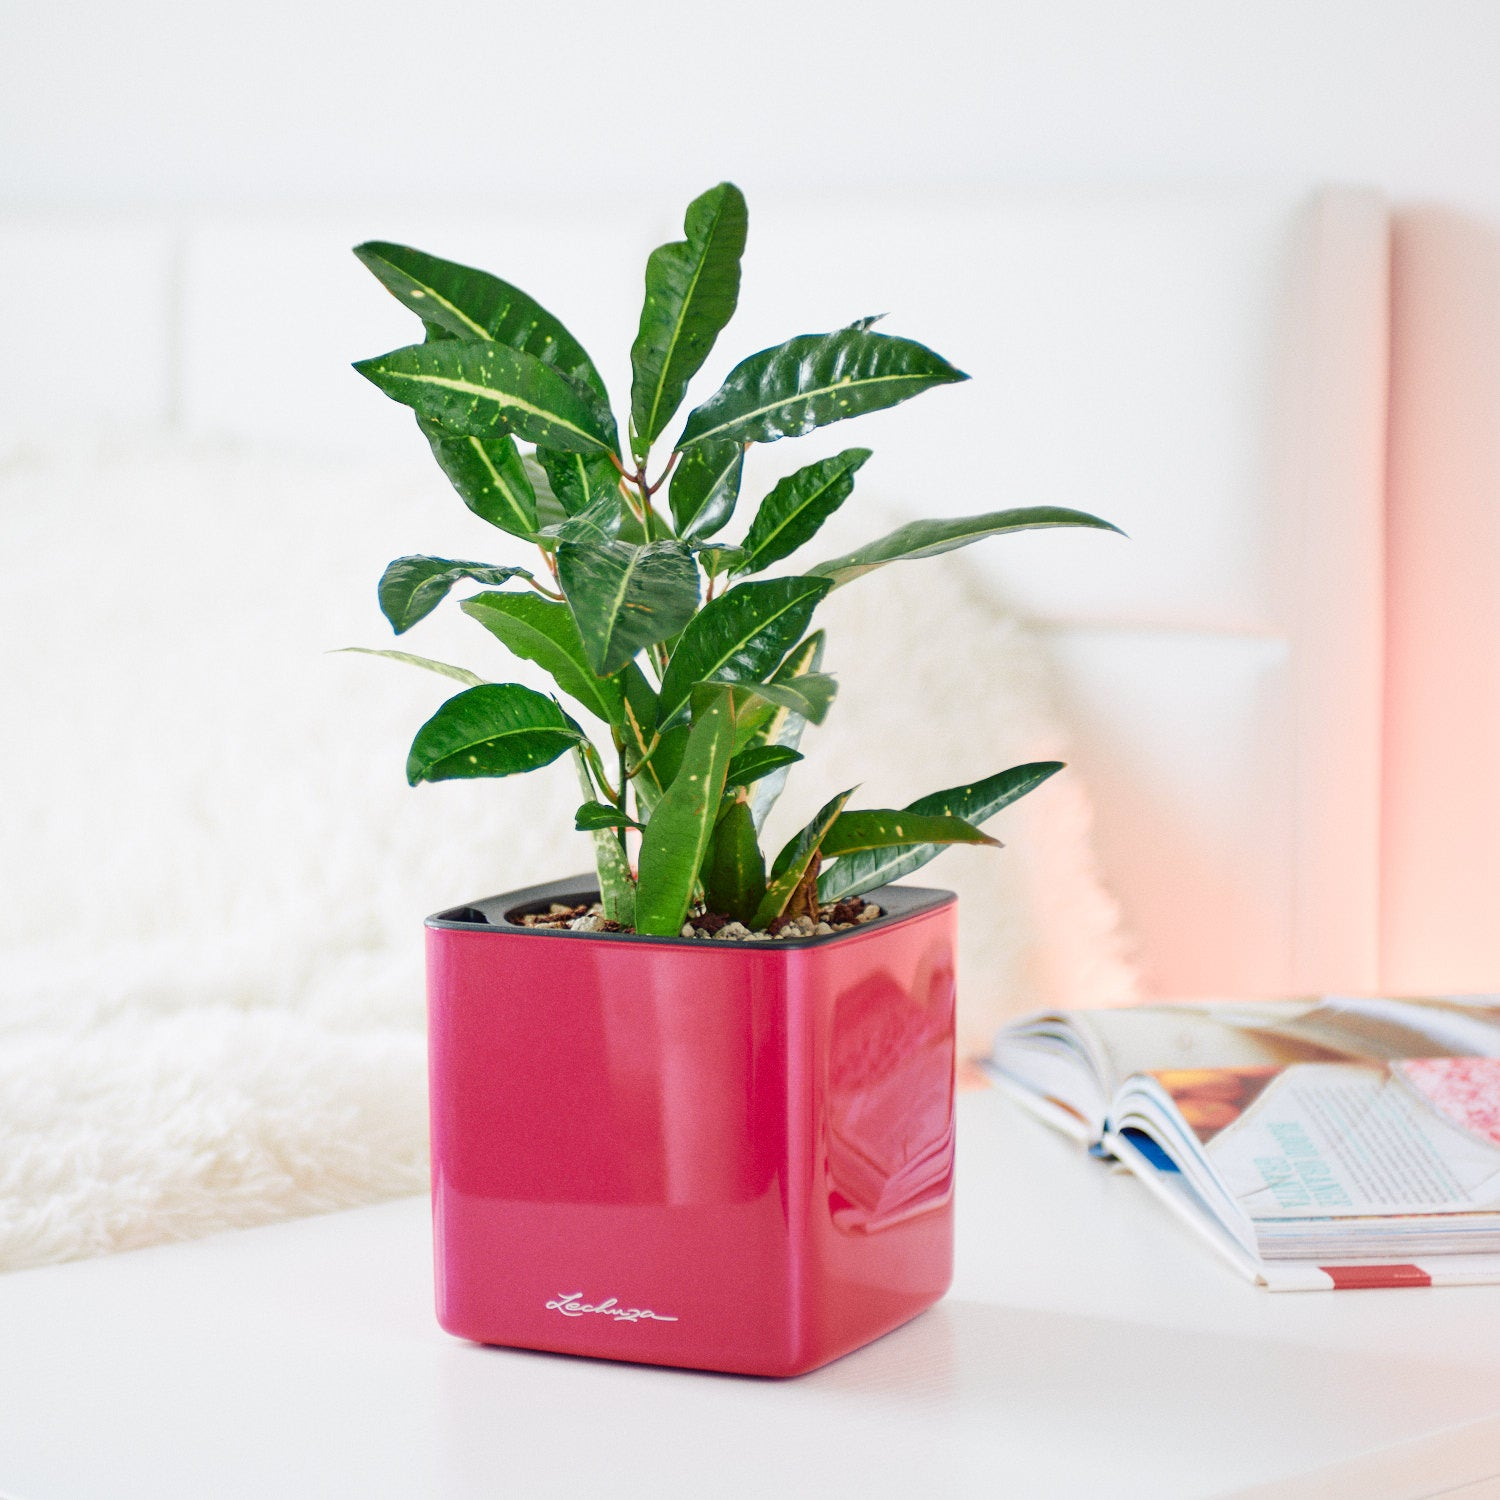 Croton Sunny Star In Lechuza Cube Cherry Pie Planter | My City Plants